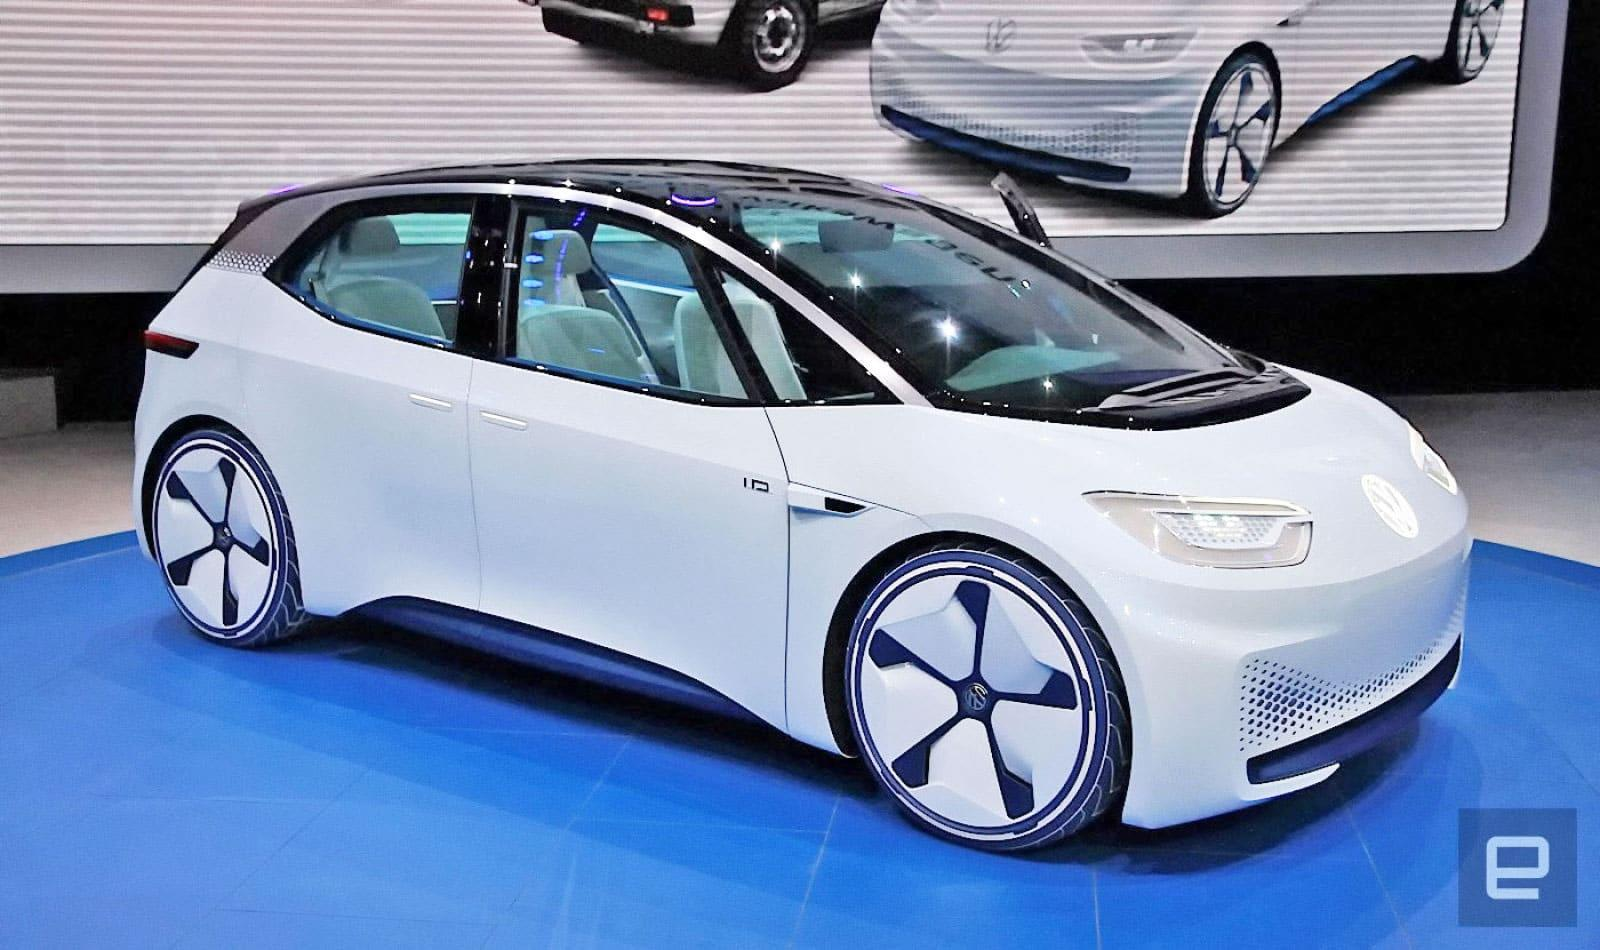 VW's I.D. EV will deliver a 300 mile range for the price of a Golf ...